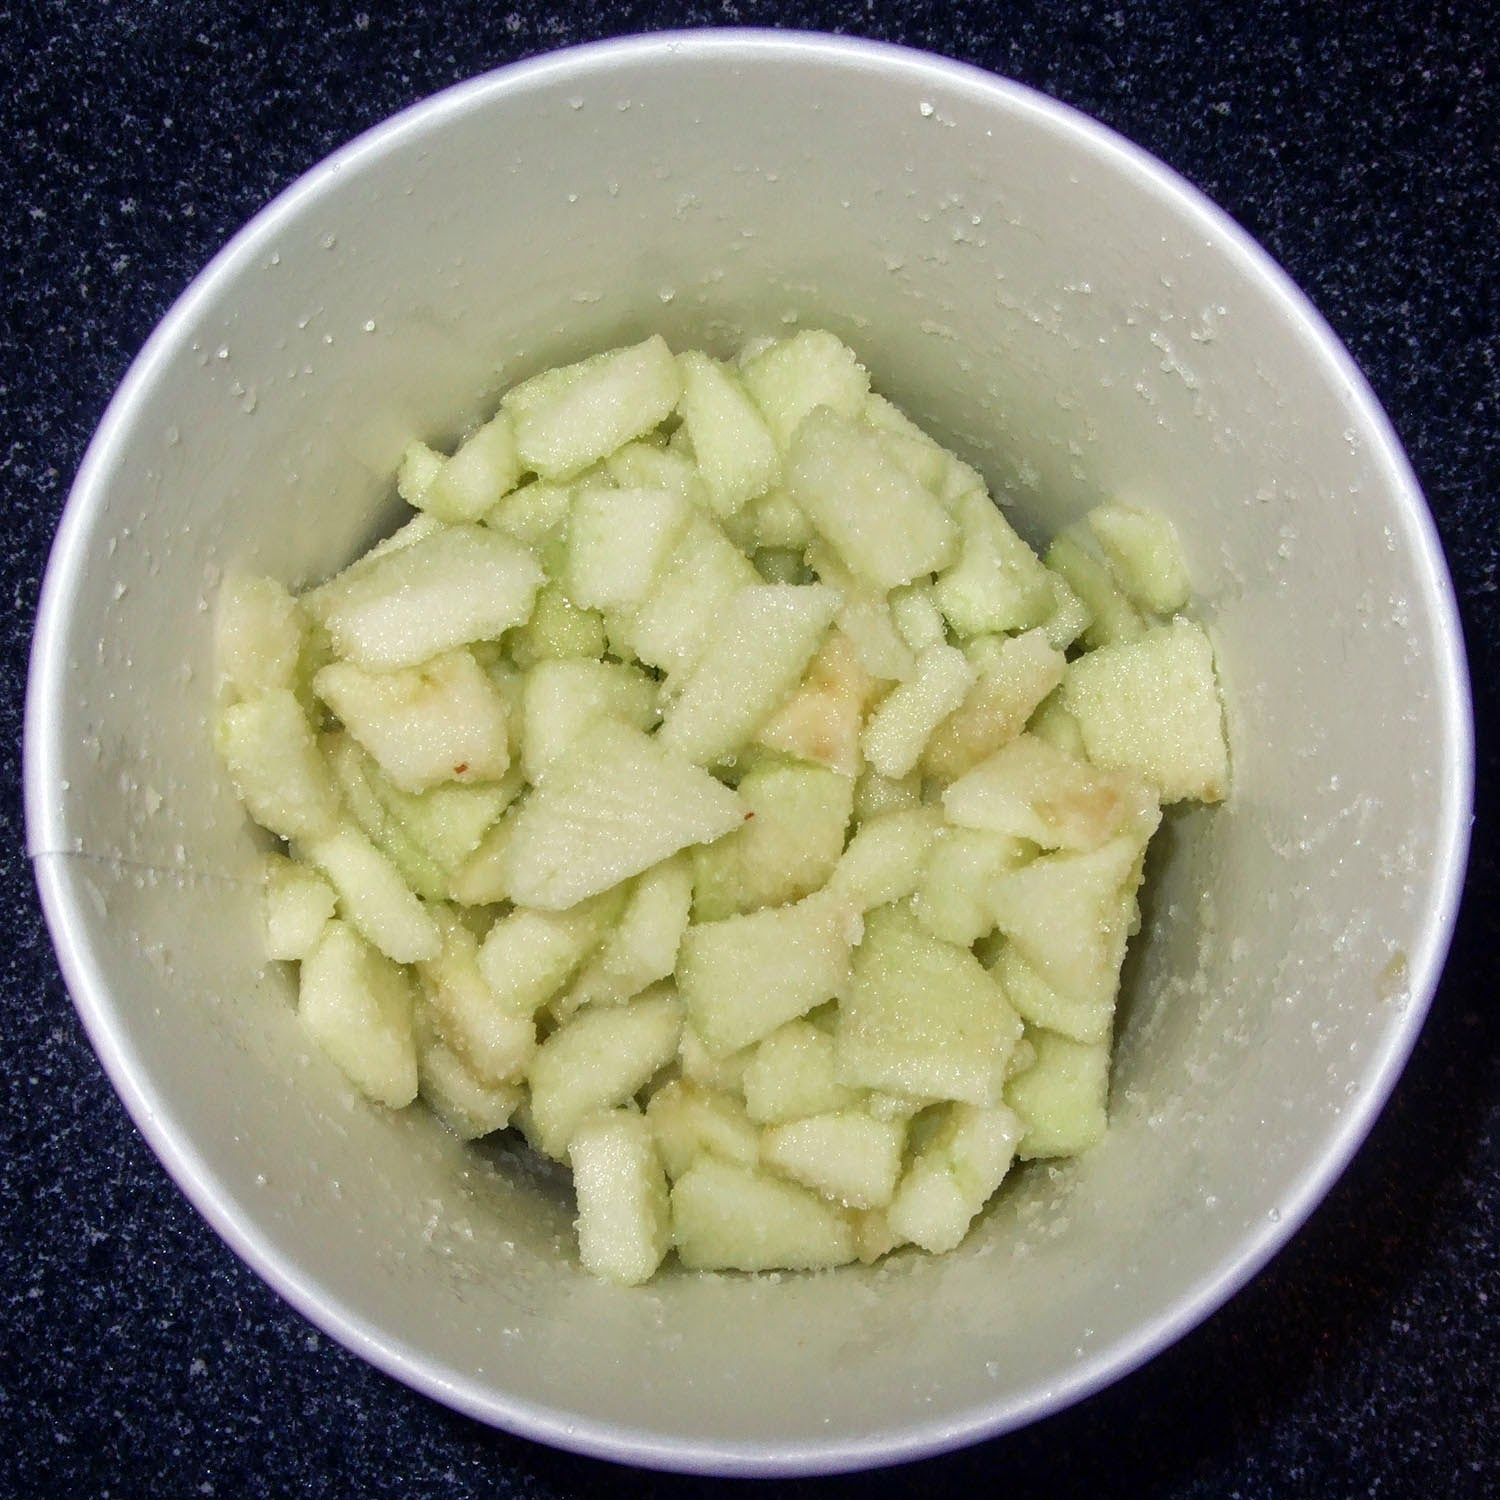 Raw apple pieces.